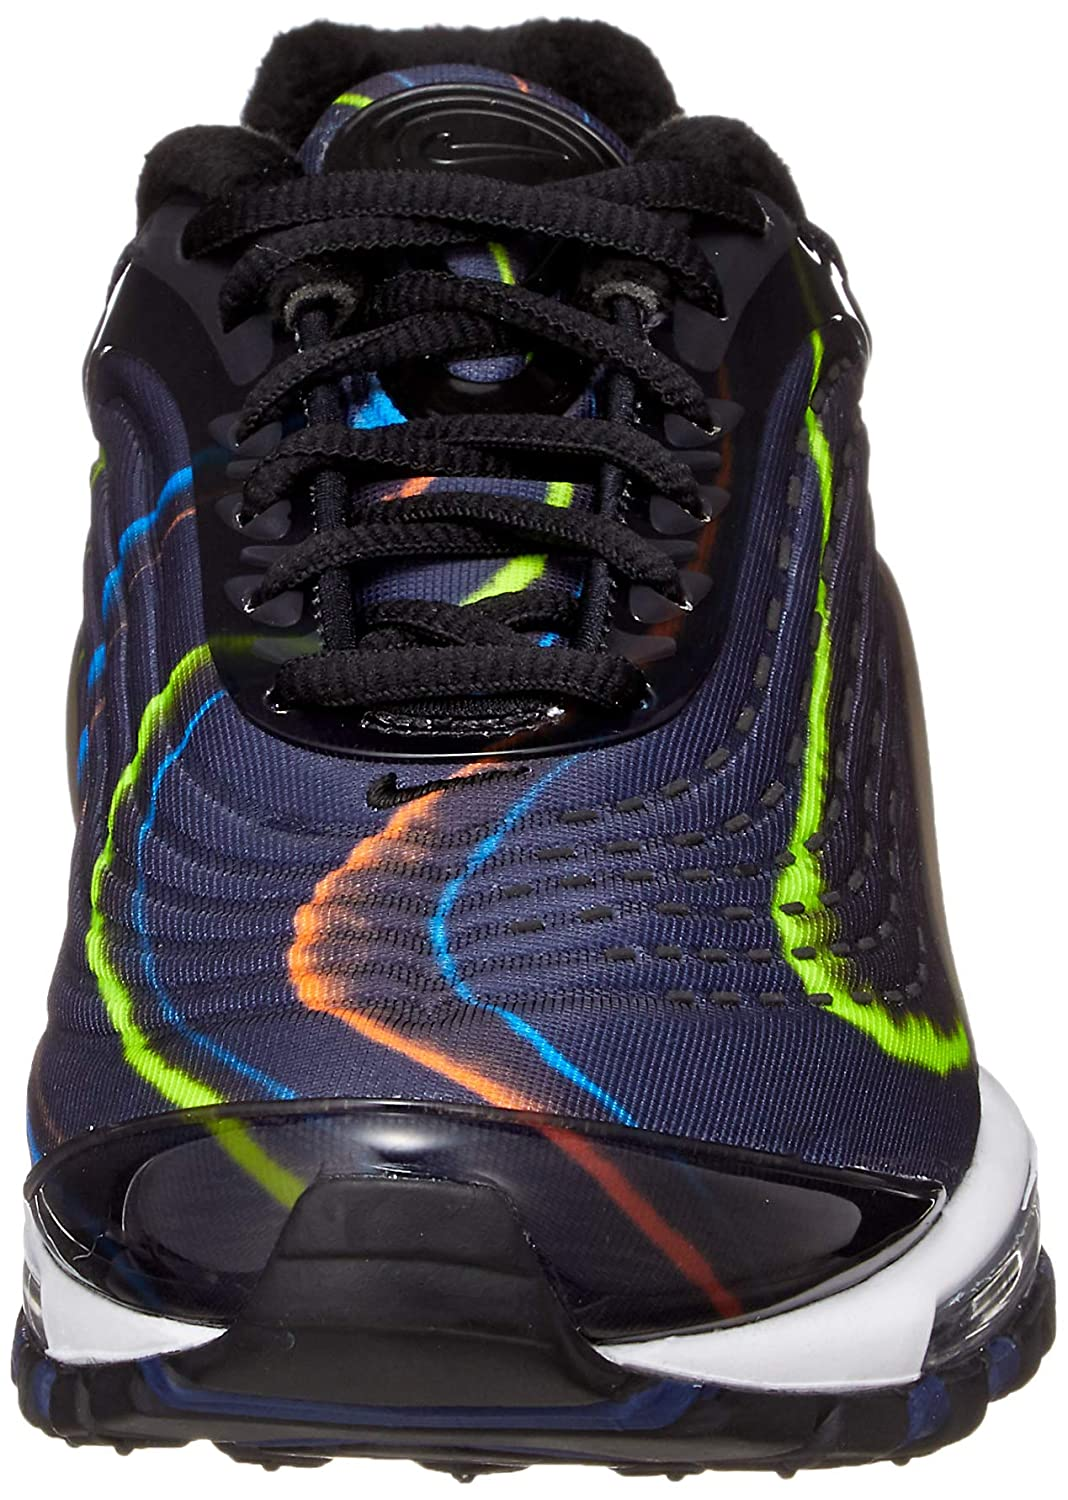 6aa2ca79f59 Nike Men s Air Max Deluxe Gymnastics Shoes  Amazon.co.uk  Shoes   Bags